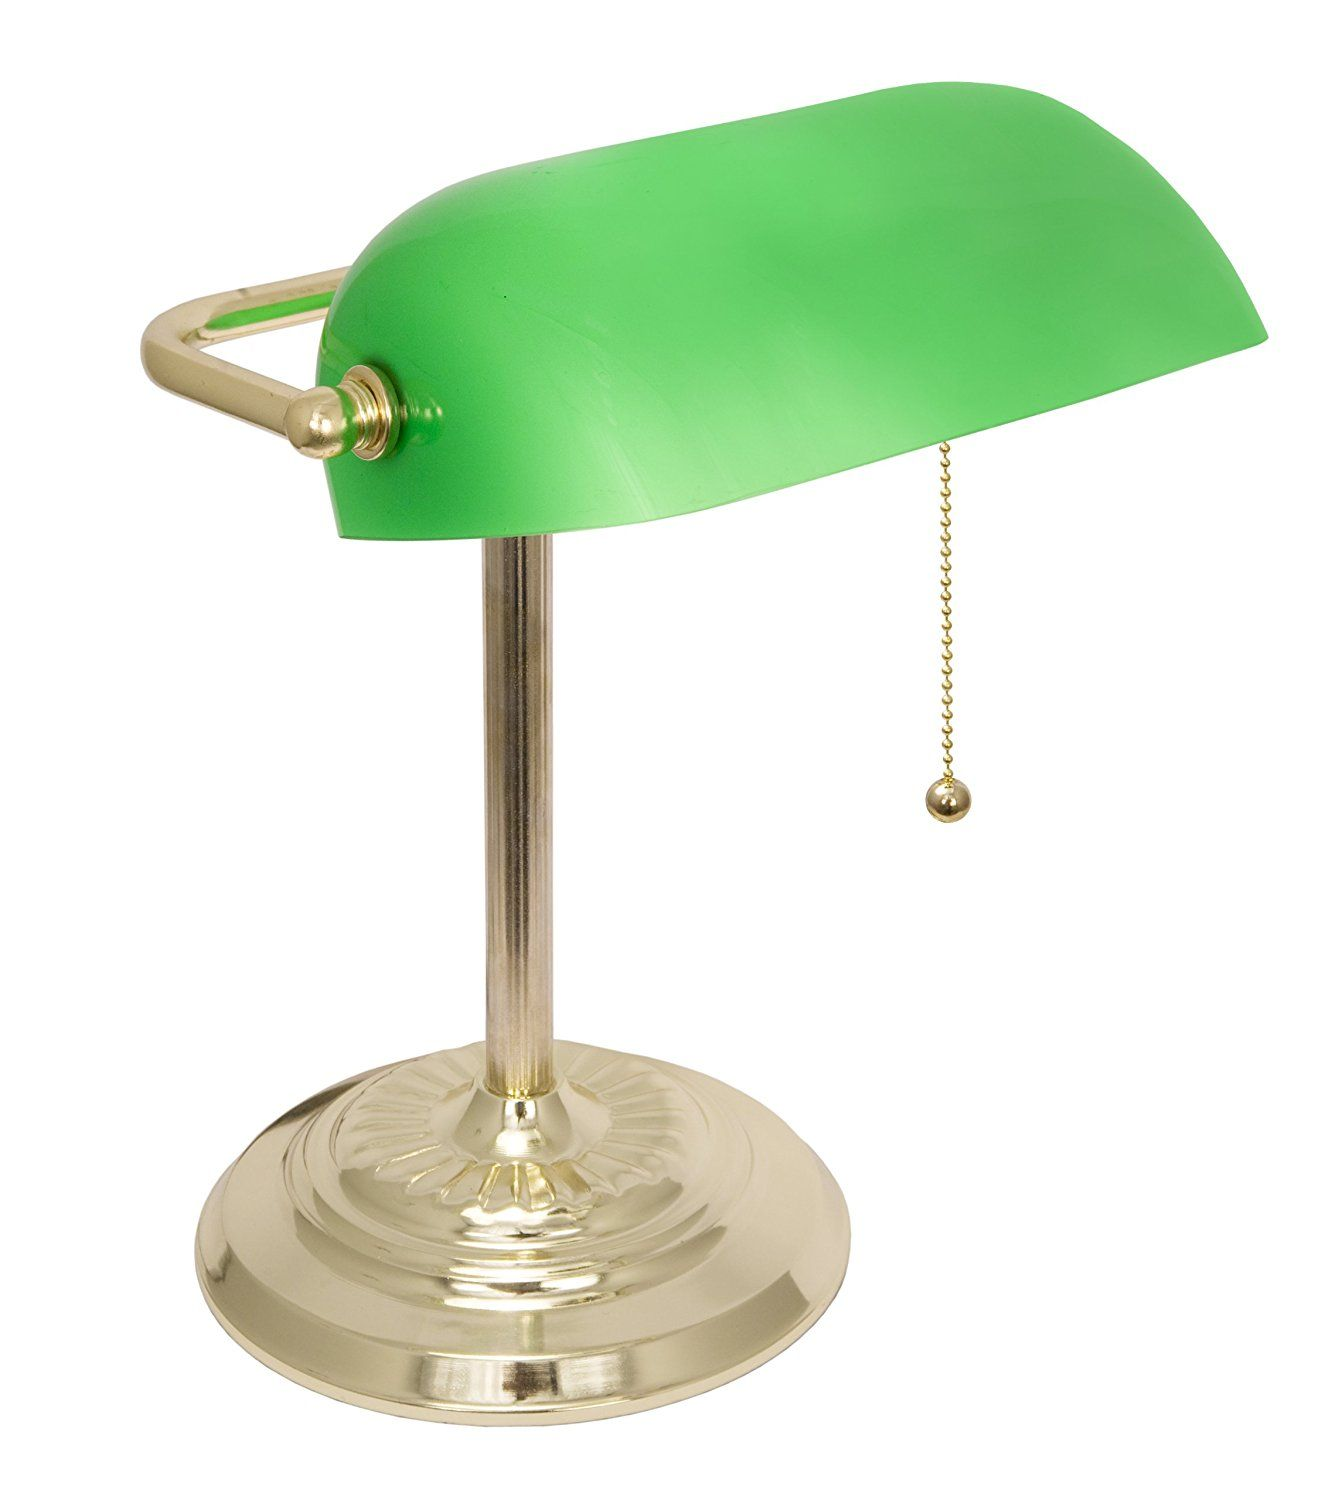 Lightaccents metal bankers desk lamp the bankers lamp bankers lightaccents metal bankers desk lamp the bankers lamp geotapseo Image collections